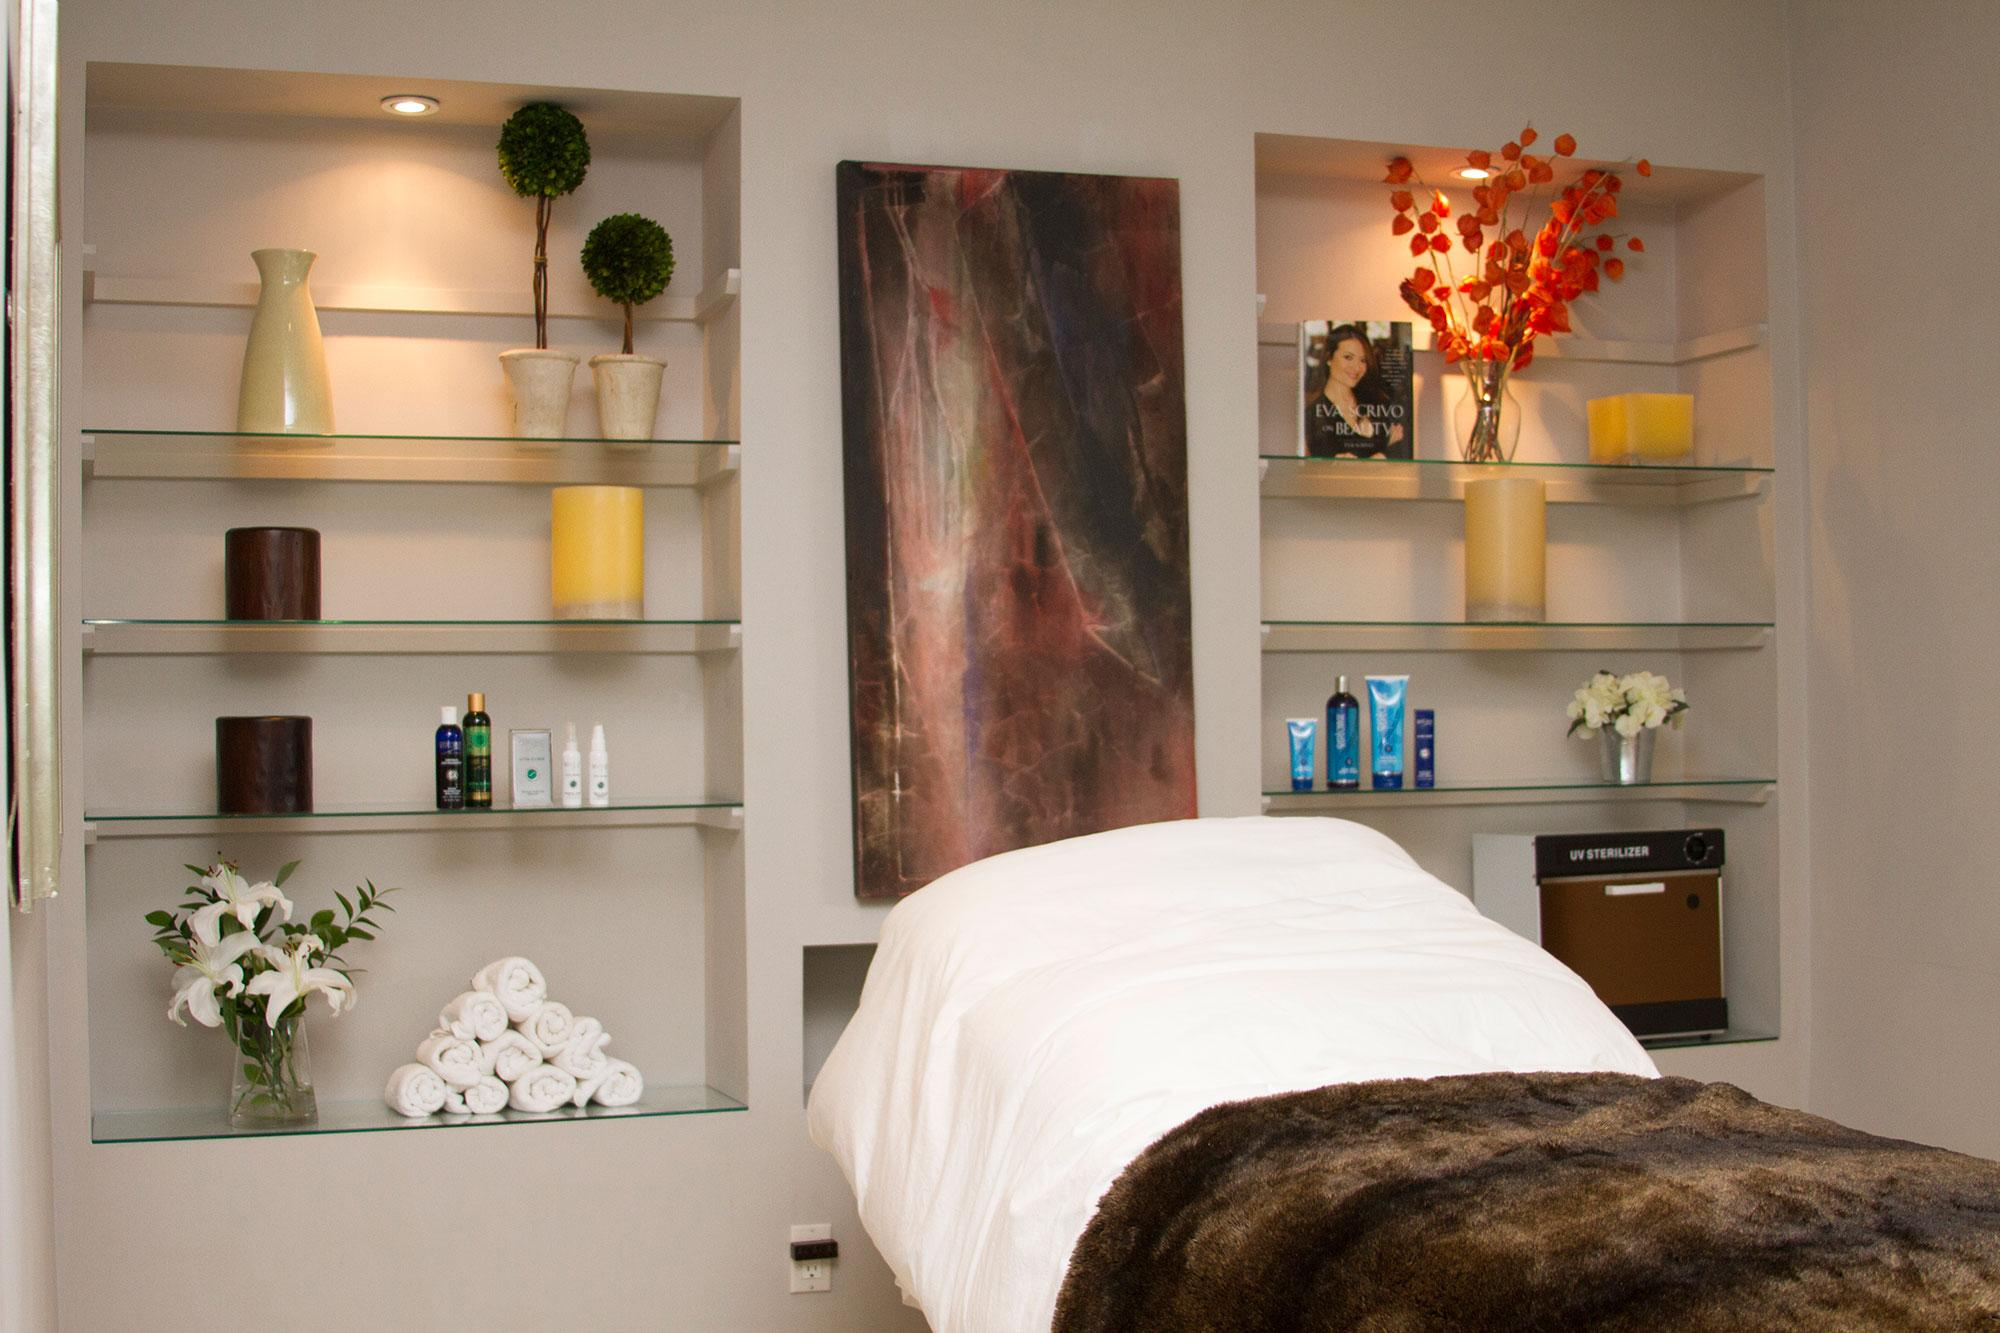 .@Repechage makes waxing relaxing with a new seaweed-based treatment: http://t.co/q7N8QQA0OB http://t.co/3kjCJyccMP